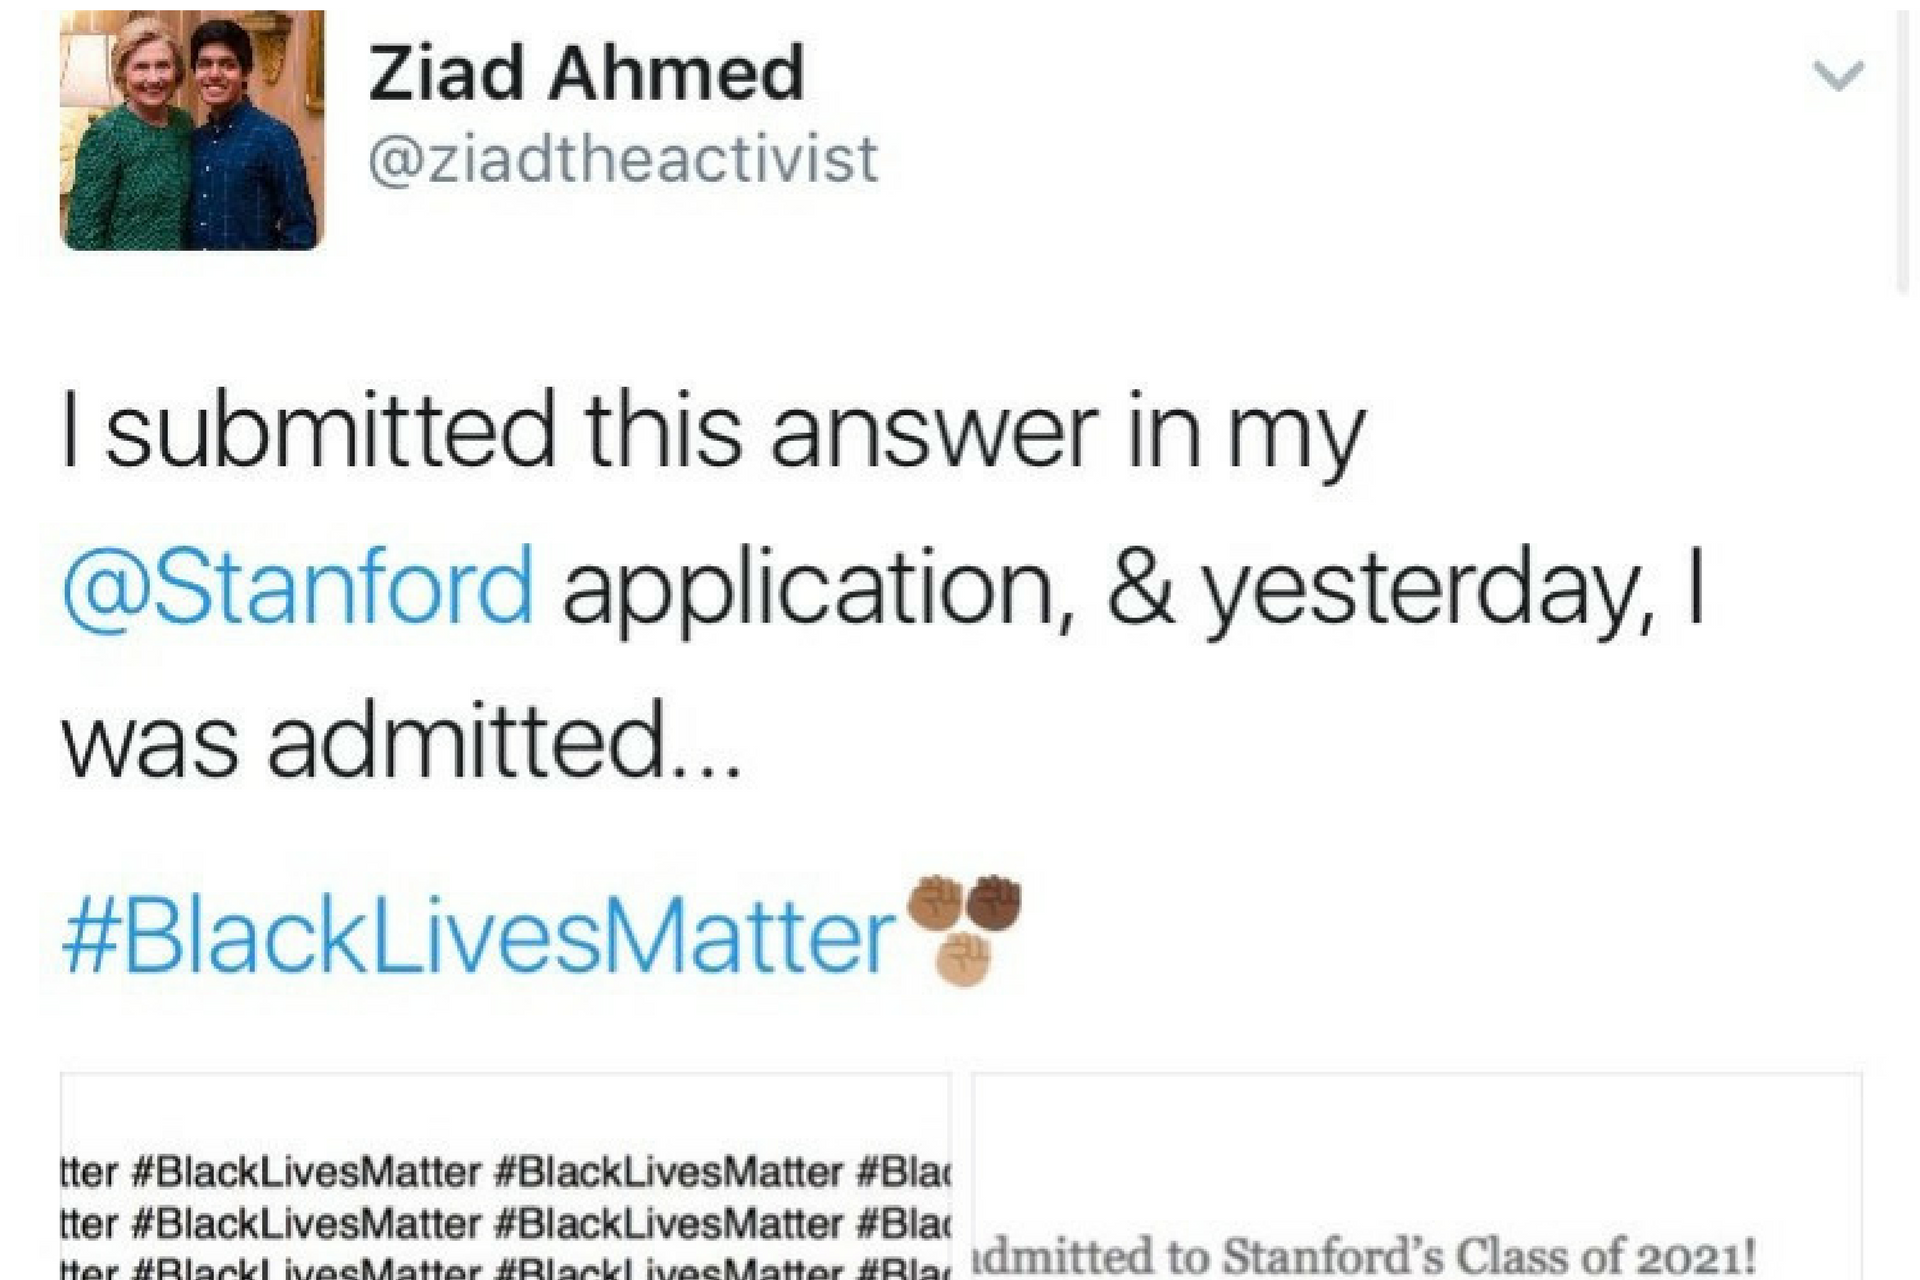 003 Essay Example Stanford Black Lives Matter Ziad Ahmed Wrote Blacklivesmatter Times On His College Untitled Desi Admission Awful Full